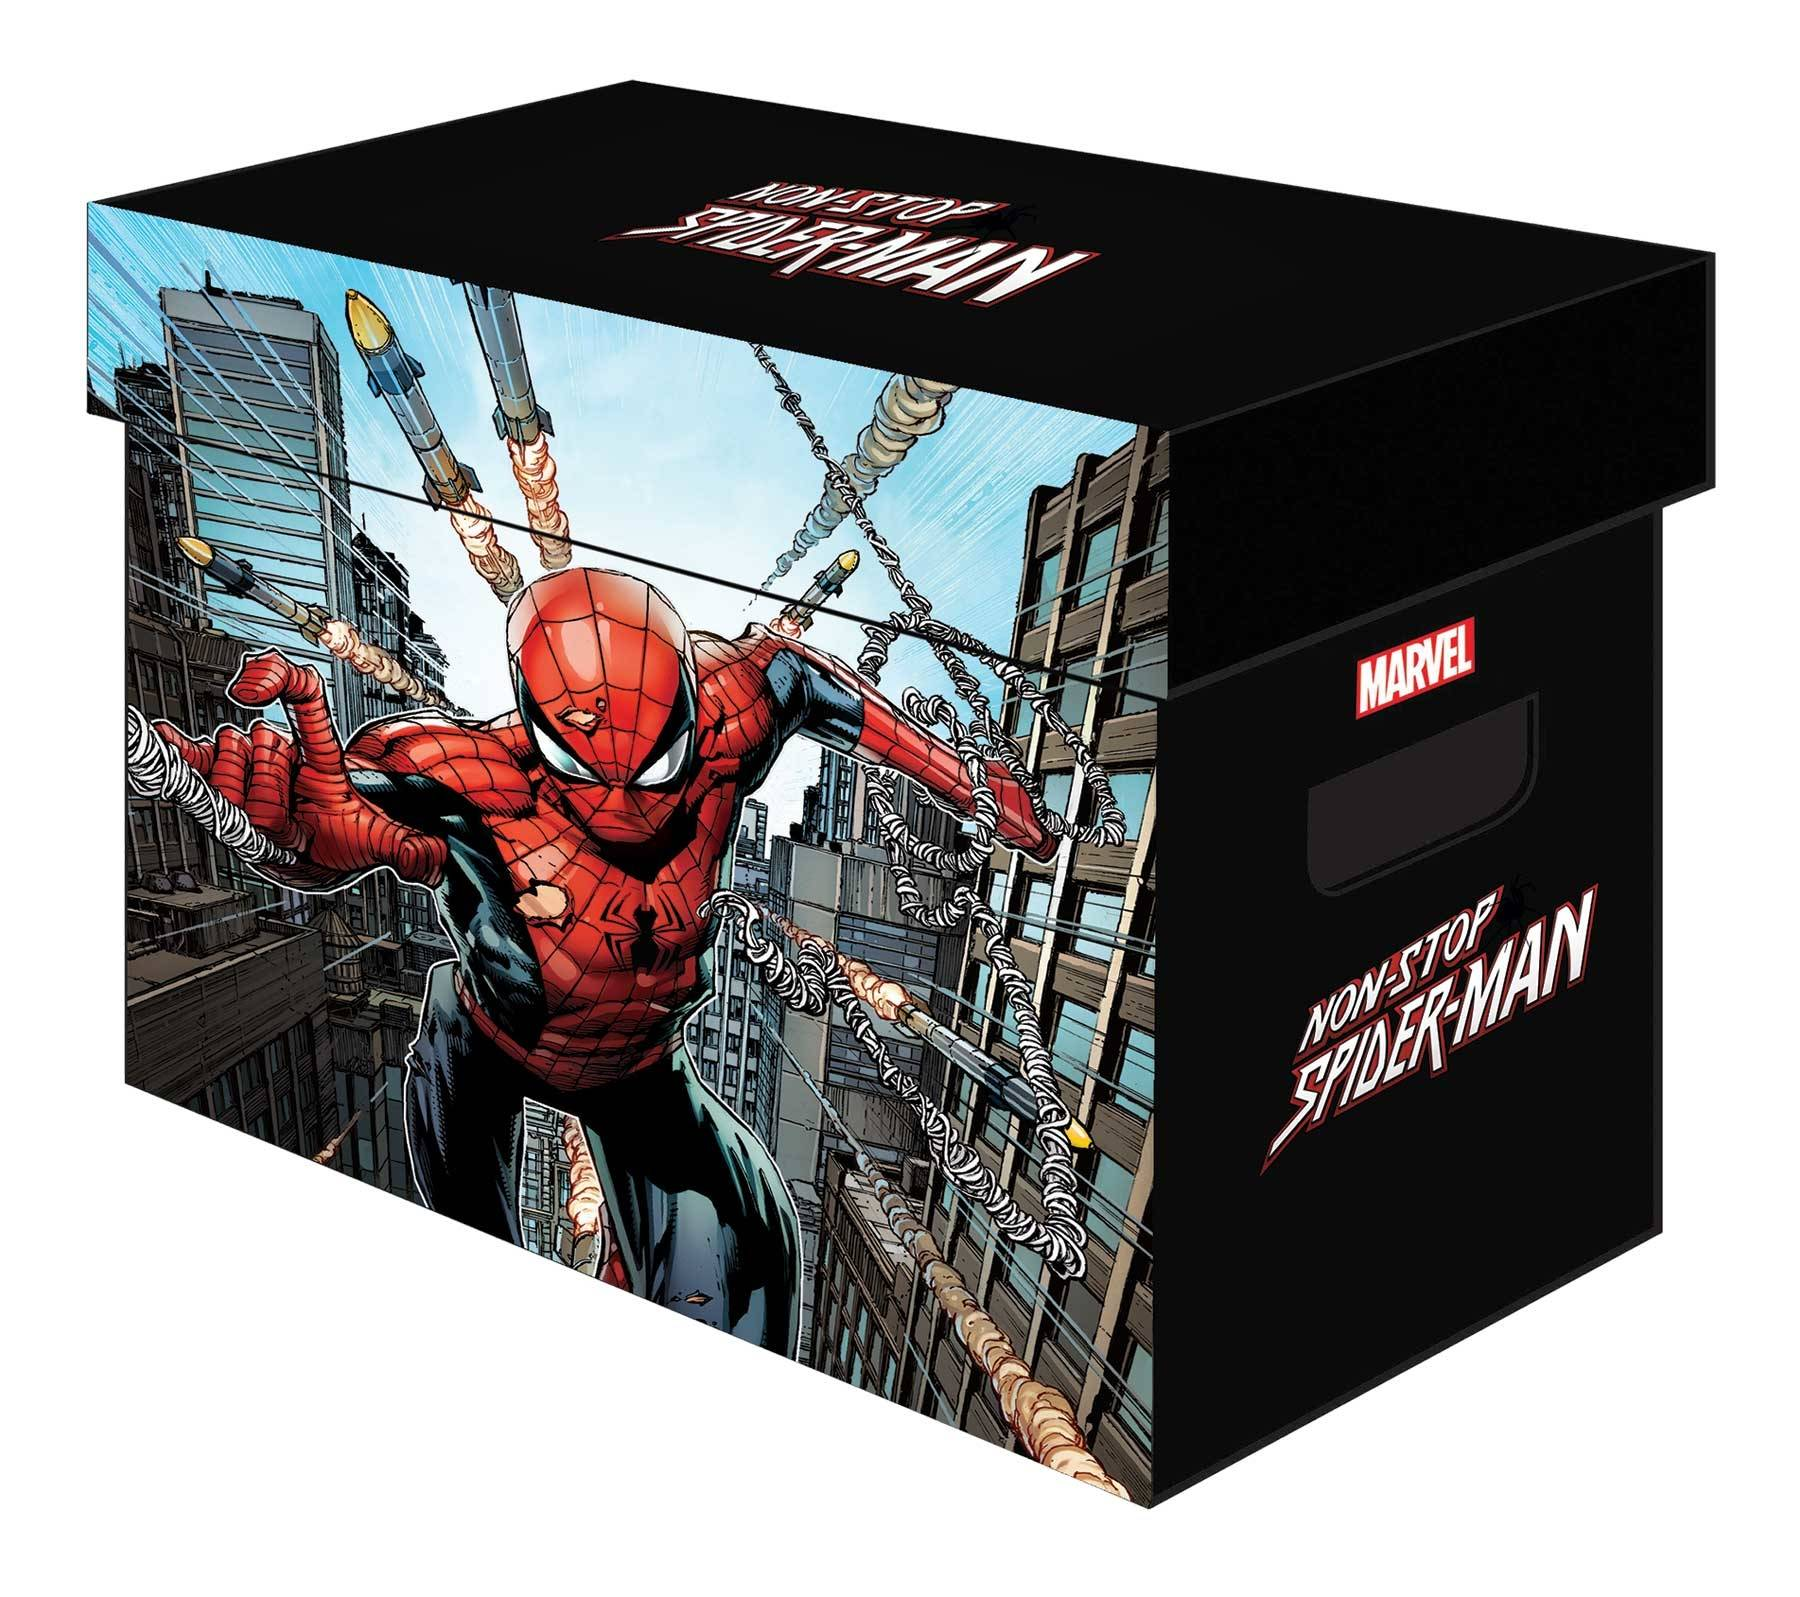 MARVEL GRAPHIC COMIC BOXES NON-STOP SPIDER-MAN